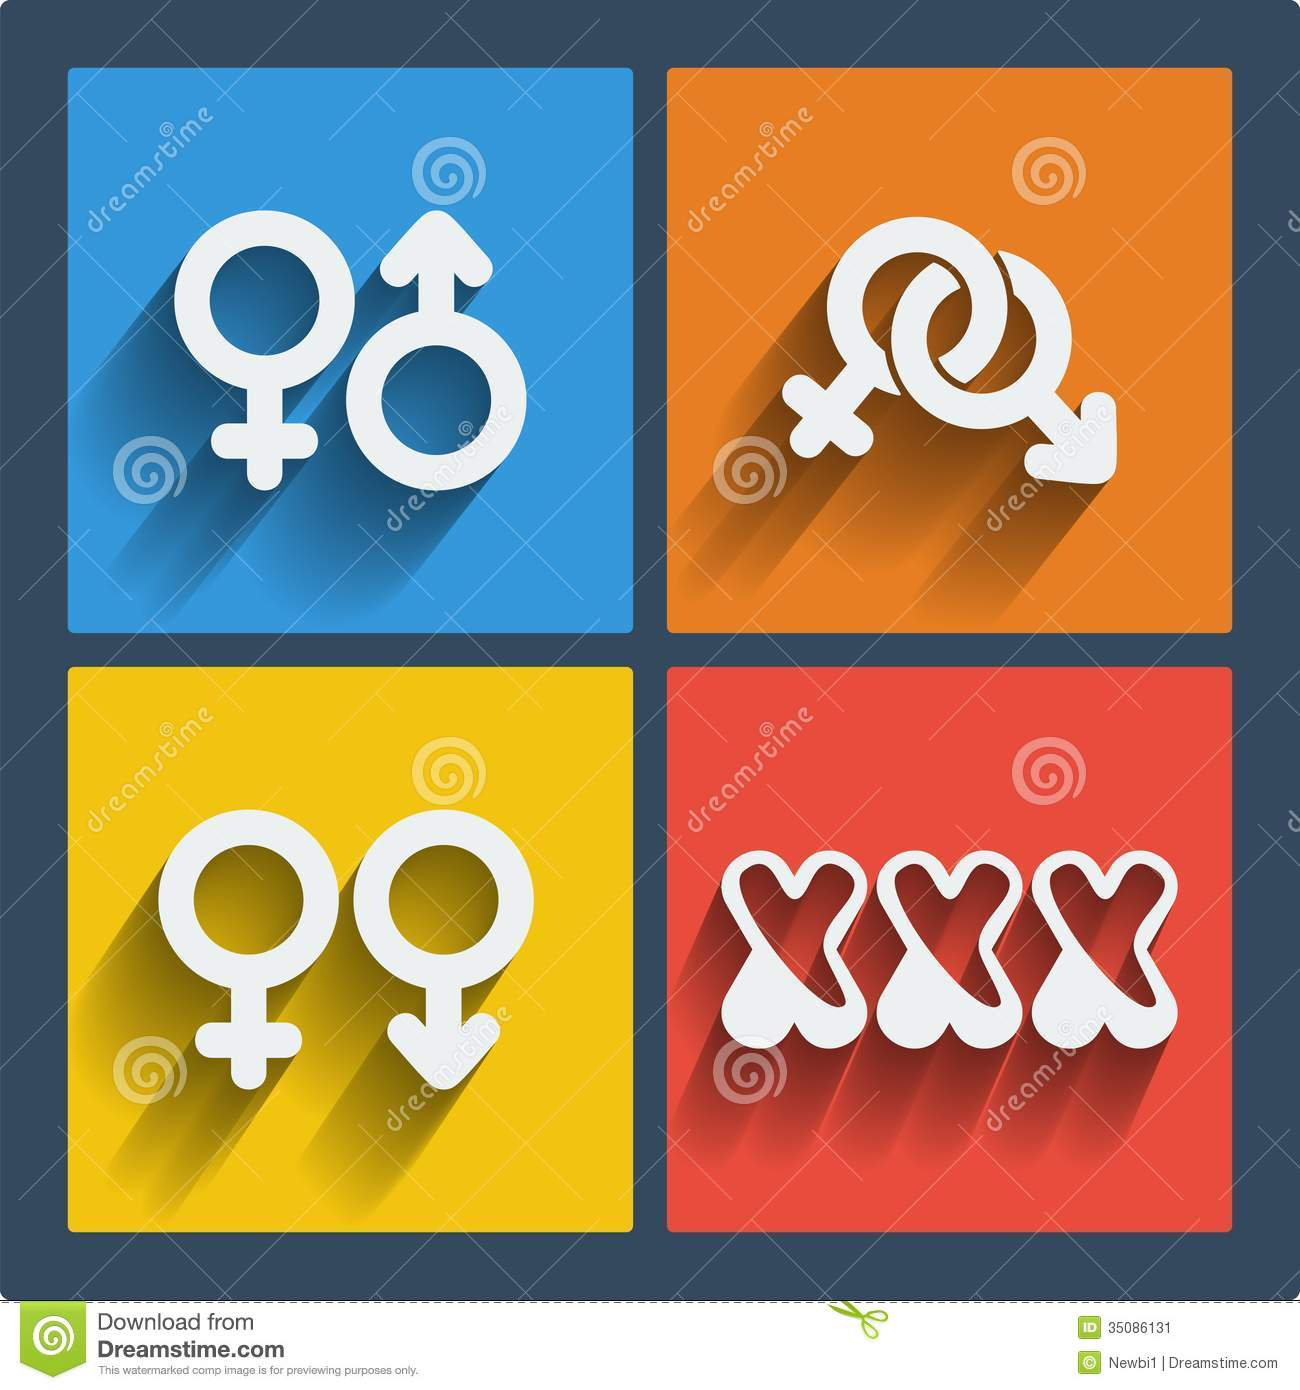 Set Of 4 Web And Mobile Gender Icons Vector Stock Vector -7787